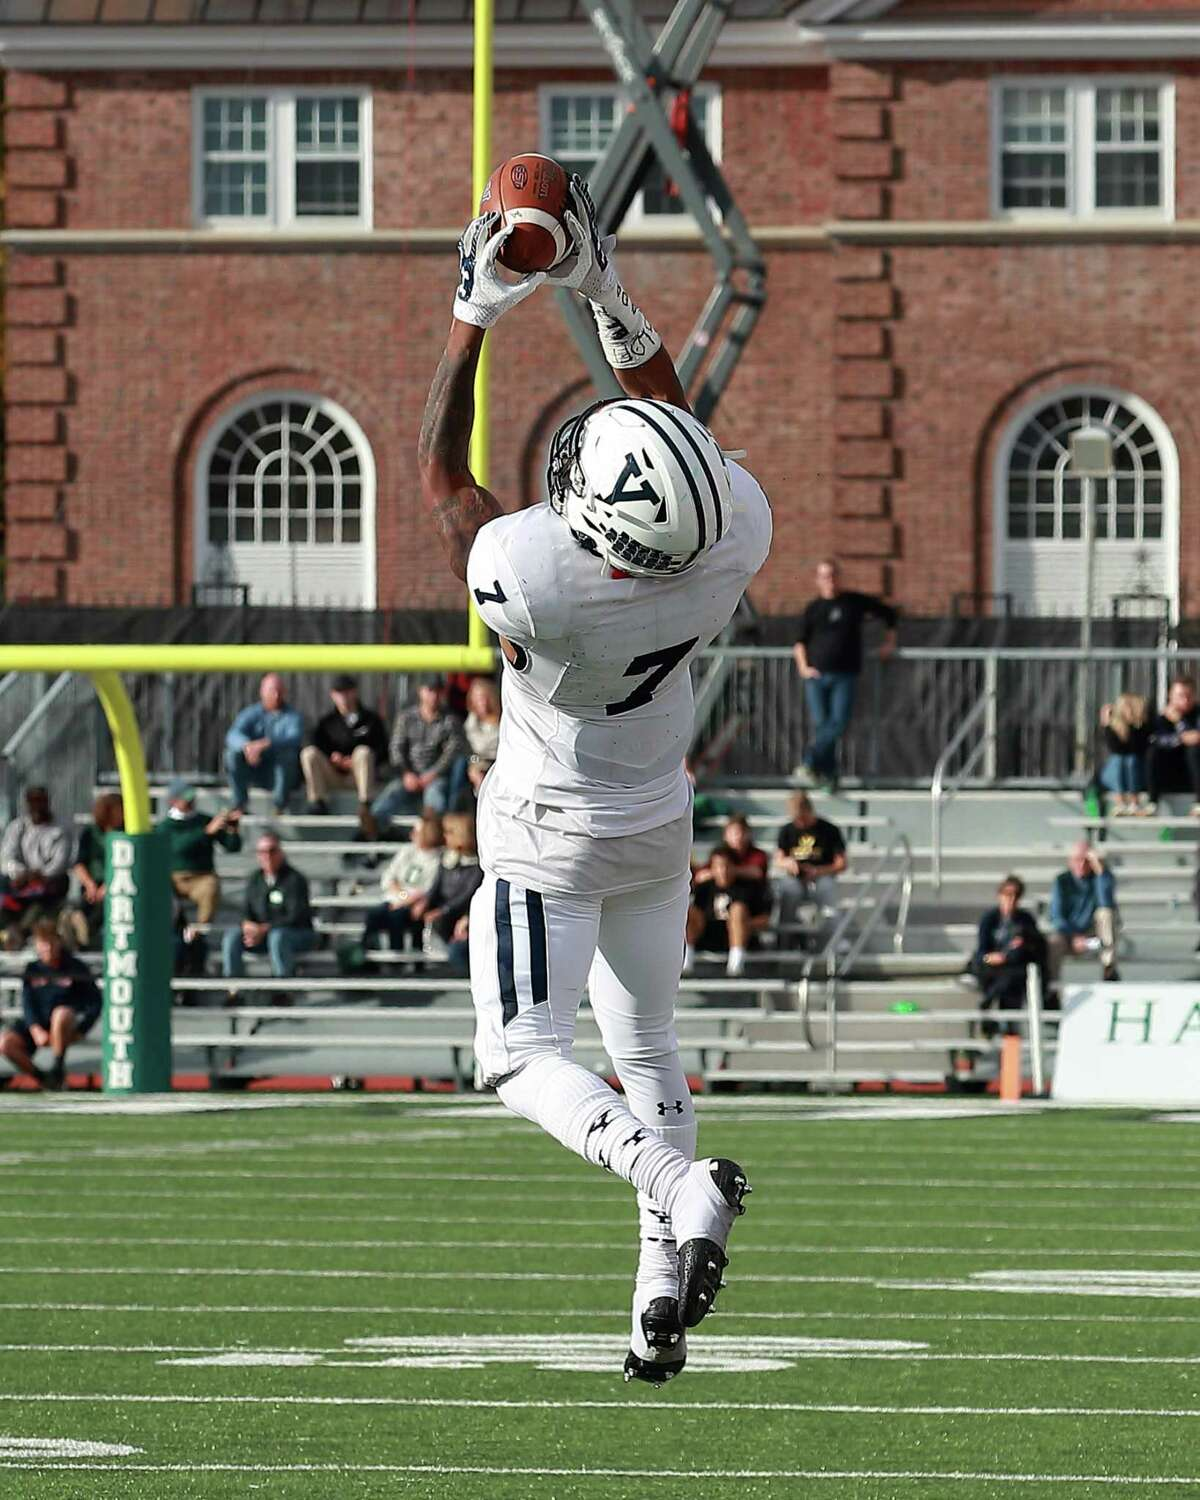 Yale Univerity senior wide receiver Melvin Rouse makes a catch against Dartmouth.